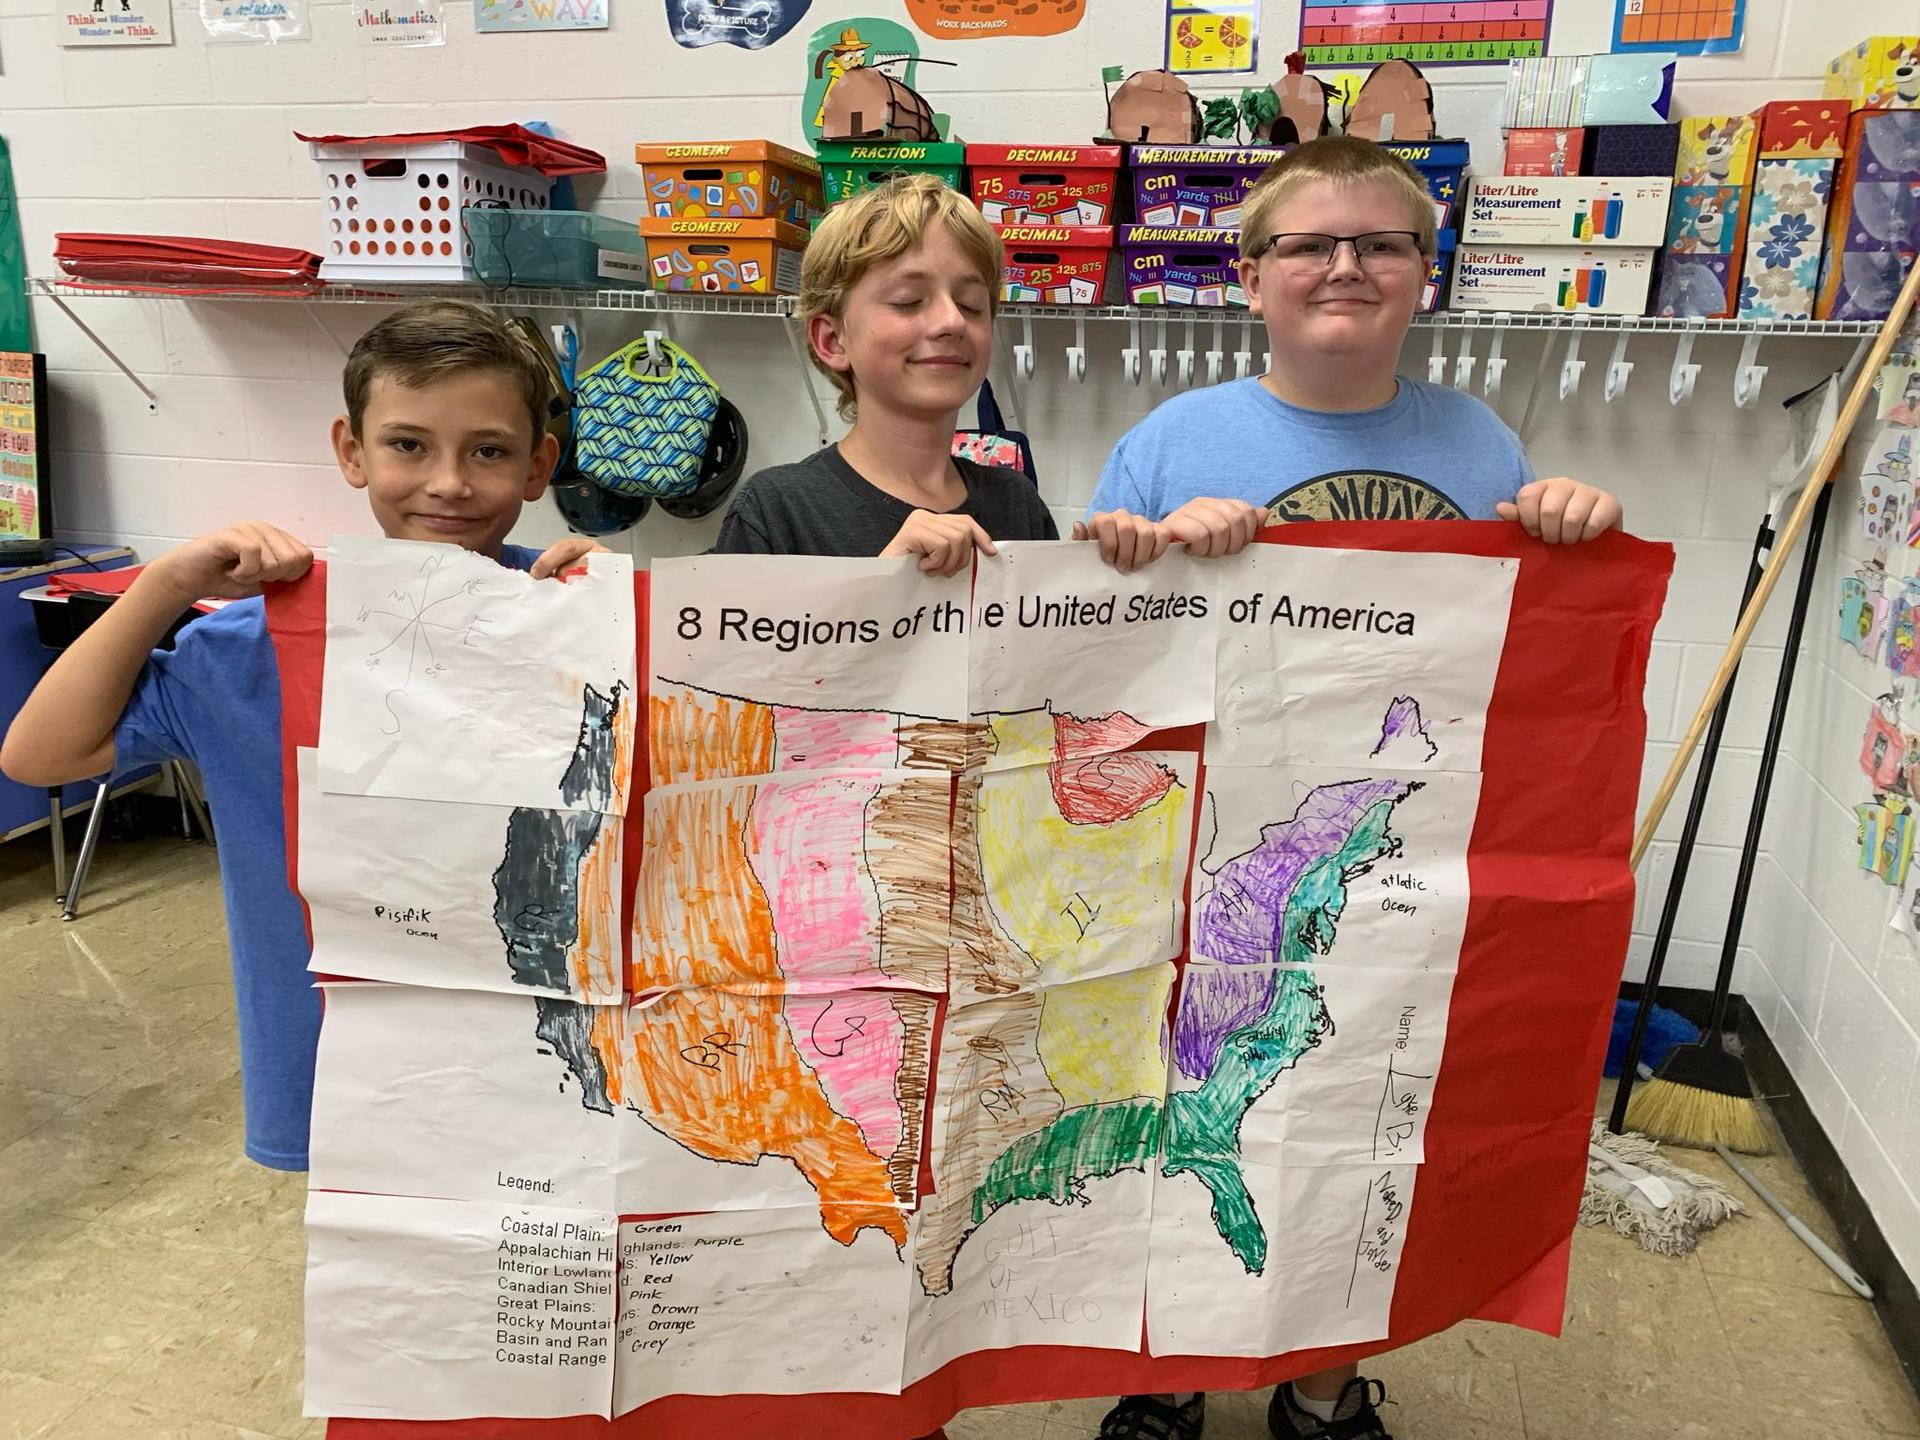 students display completed puzzle map describing the geographic features of  the eight regions of the United States.